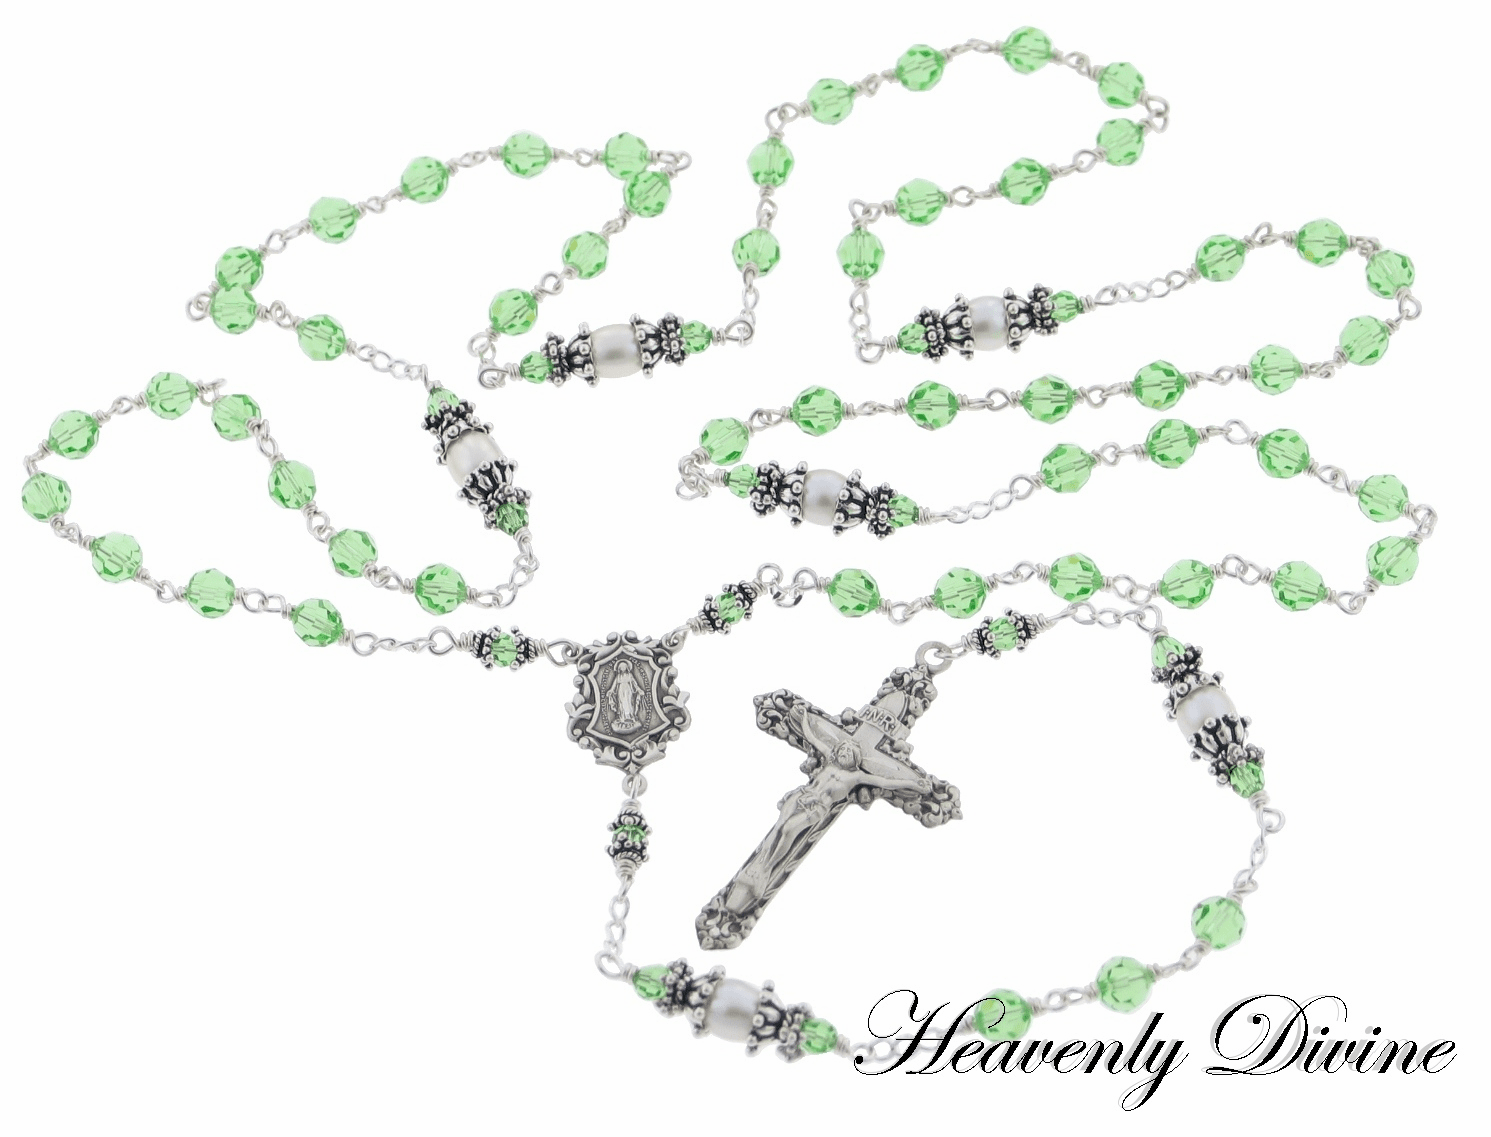 Heavenly Divine Swarovski Crystal Rosaries